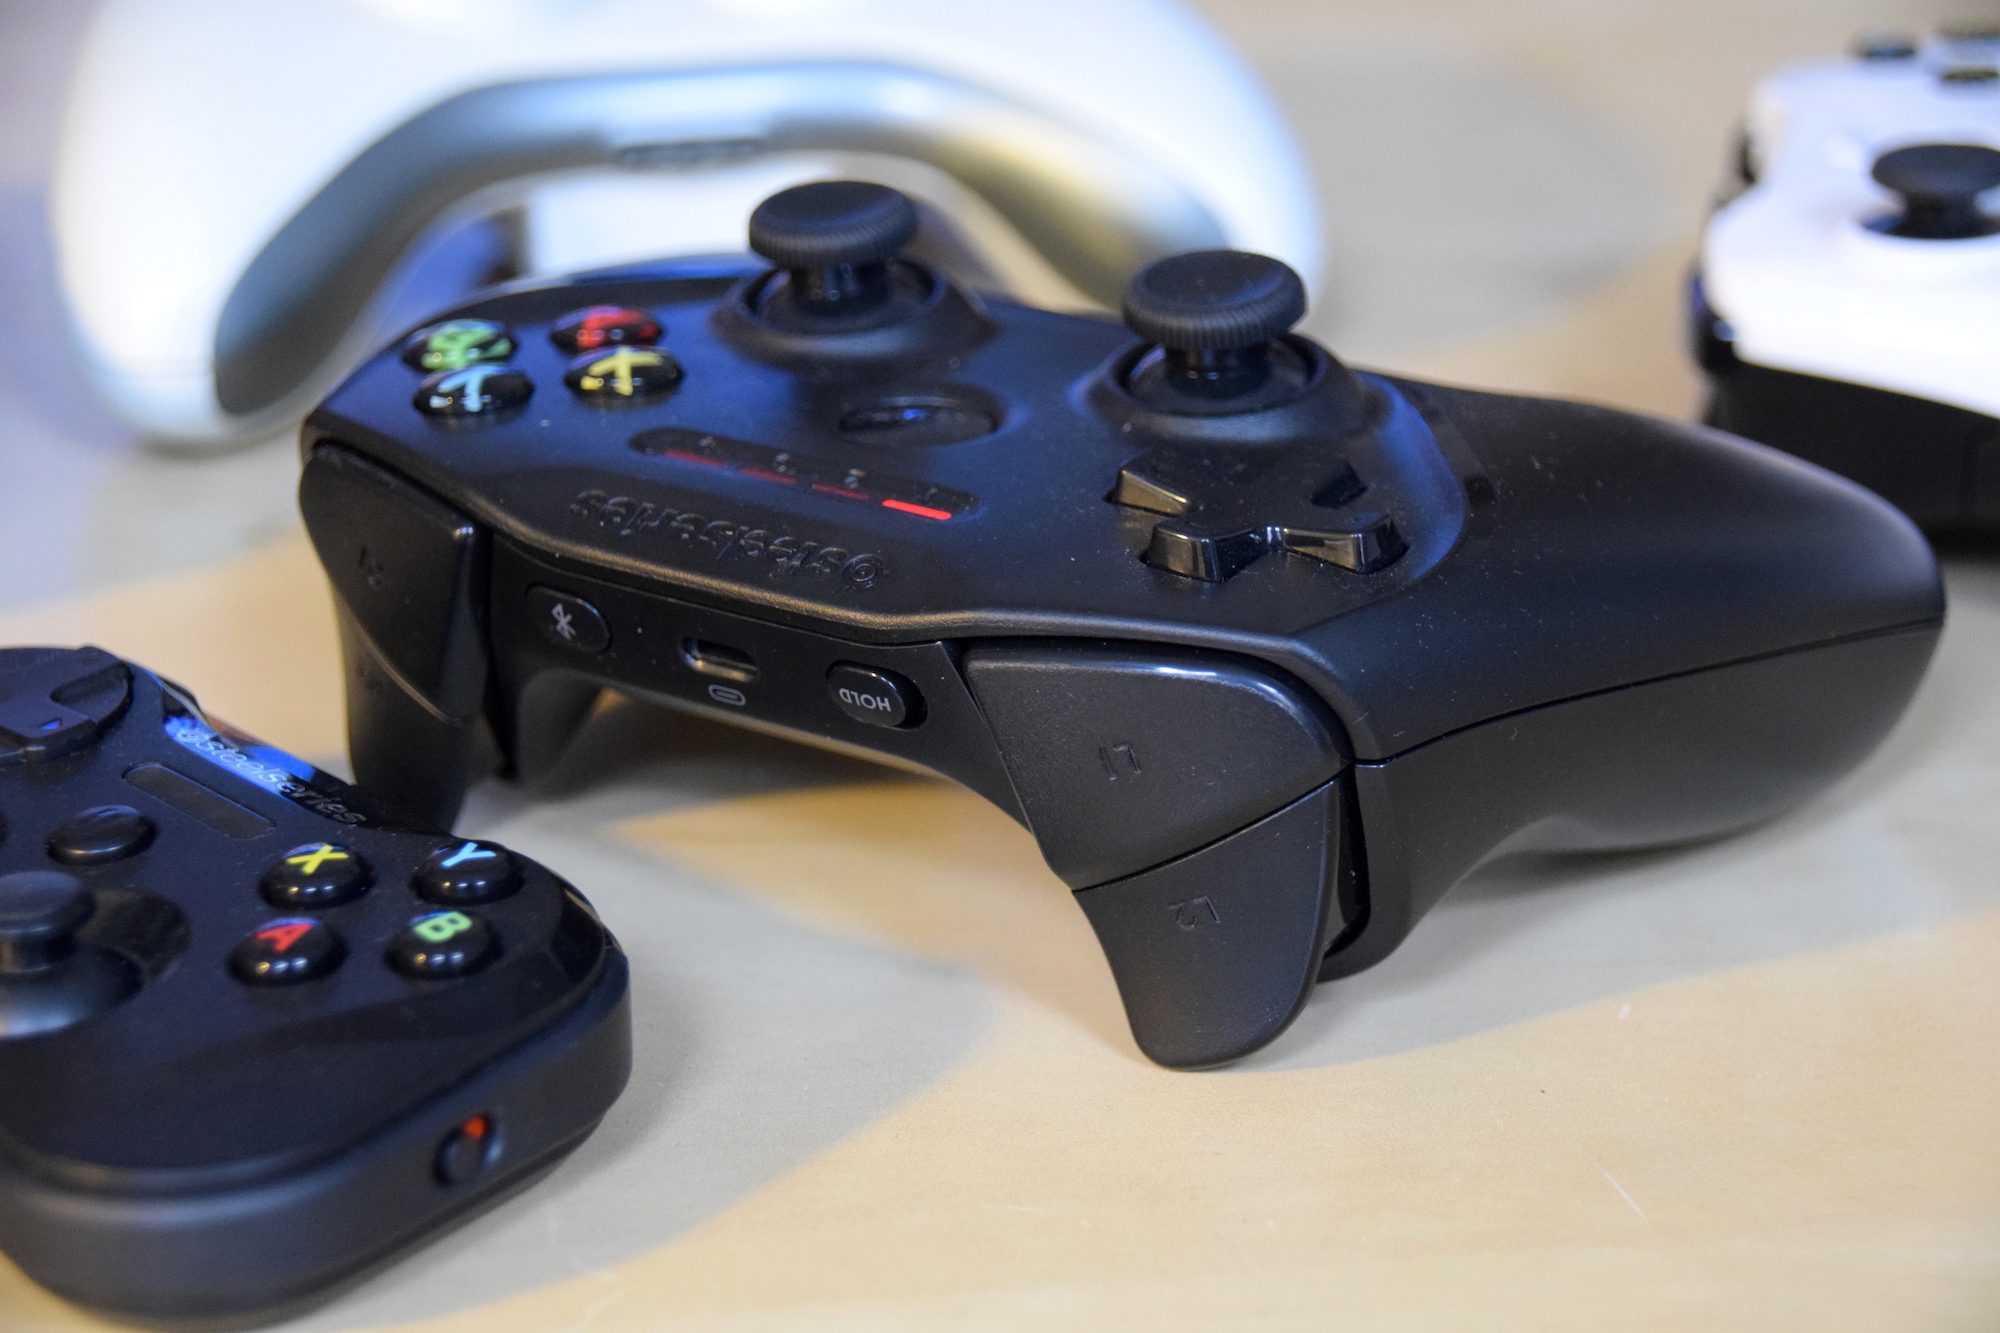 Steelseries Nimbus 02